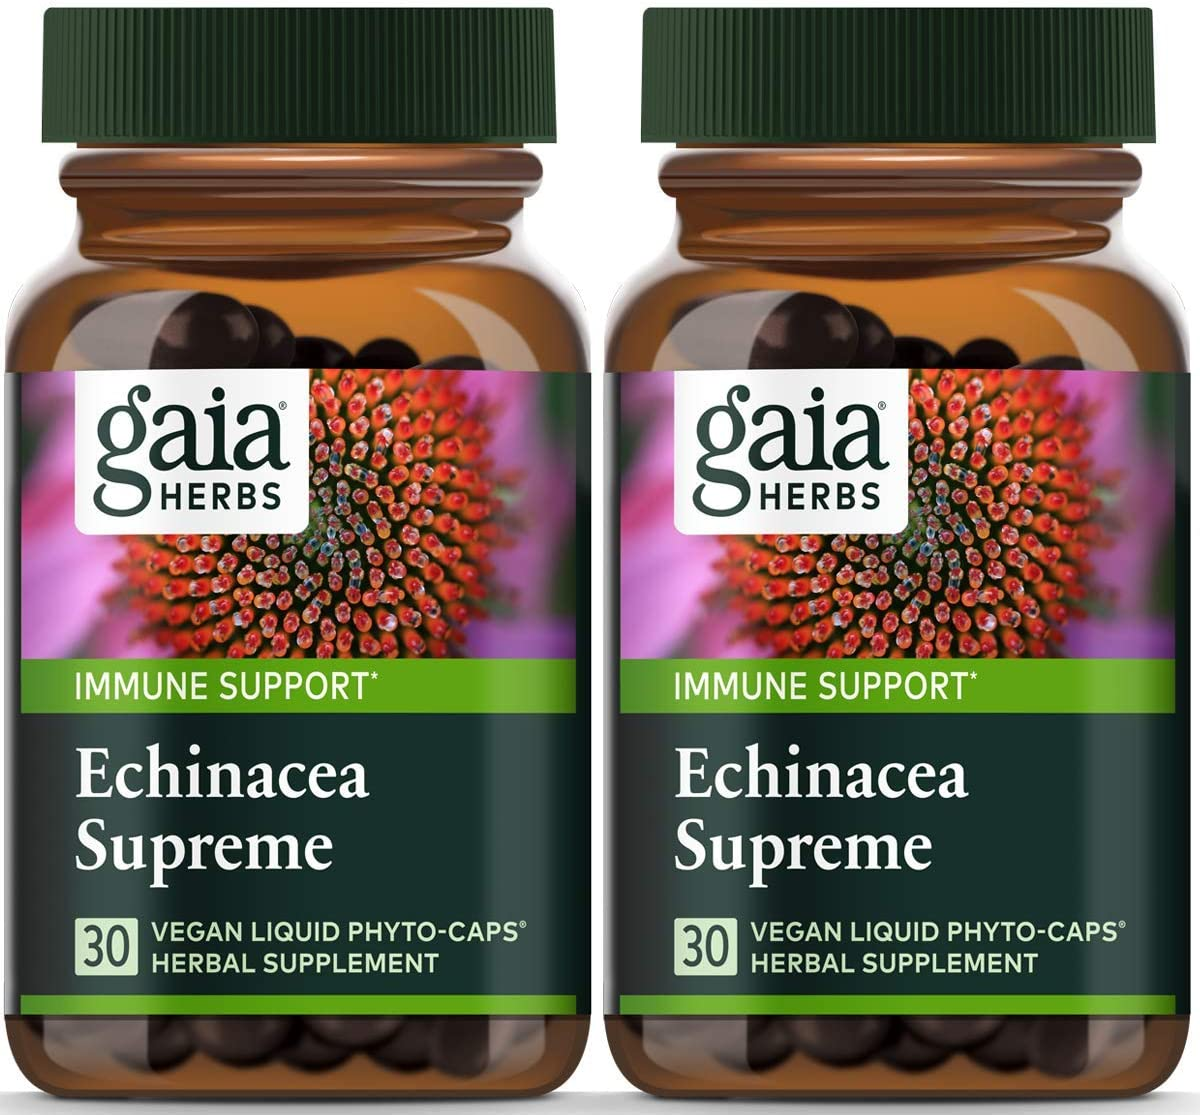 Gaia Herbs Echinacea Supreme, Vegan Liquid Capsules, 30 Count Pack of 2 – Fast-Acting Immune Support, Immune-Boosting Organic Whole Plant Echinacea